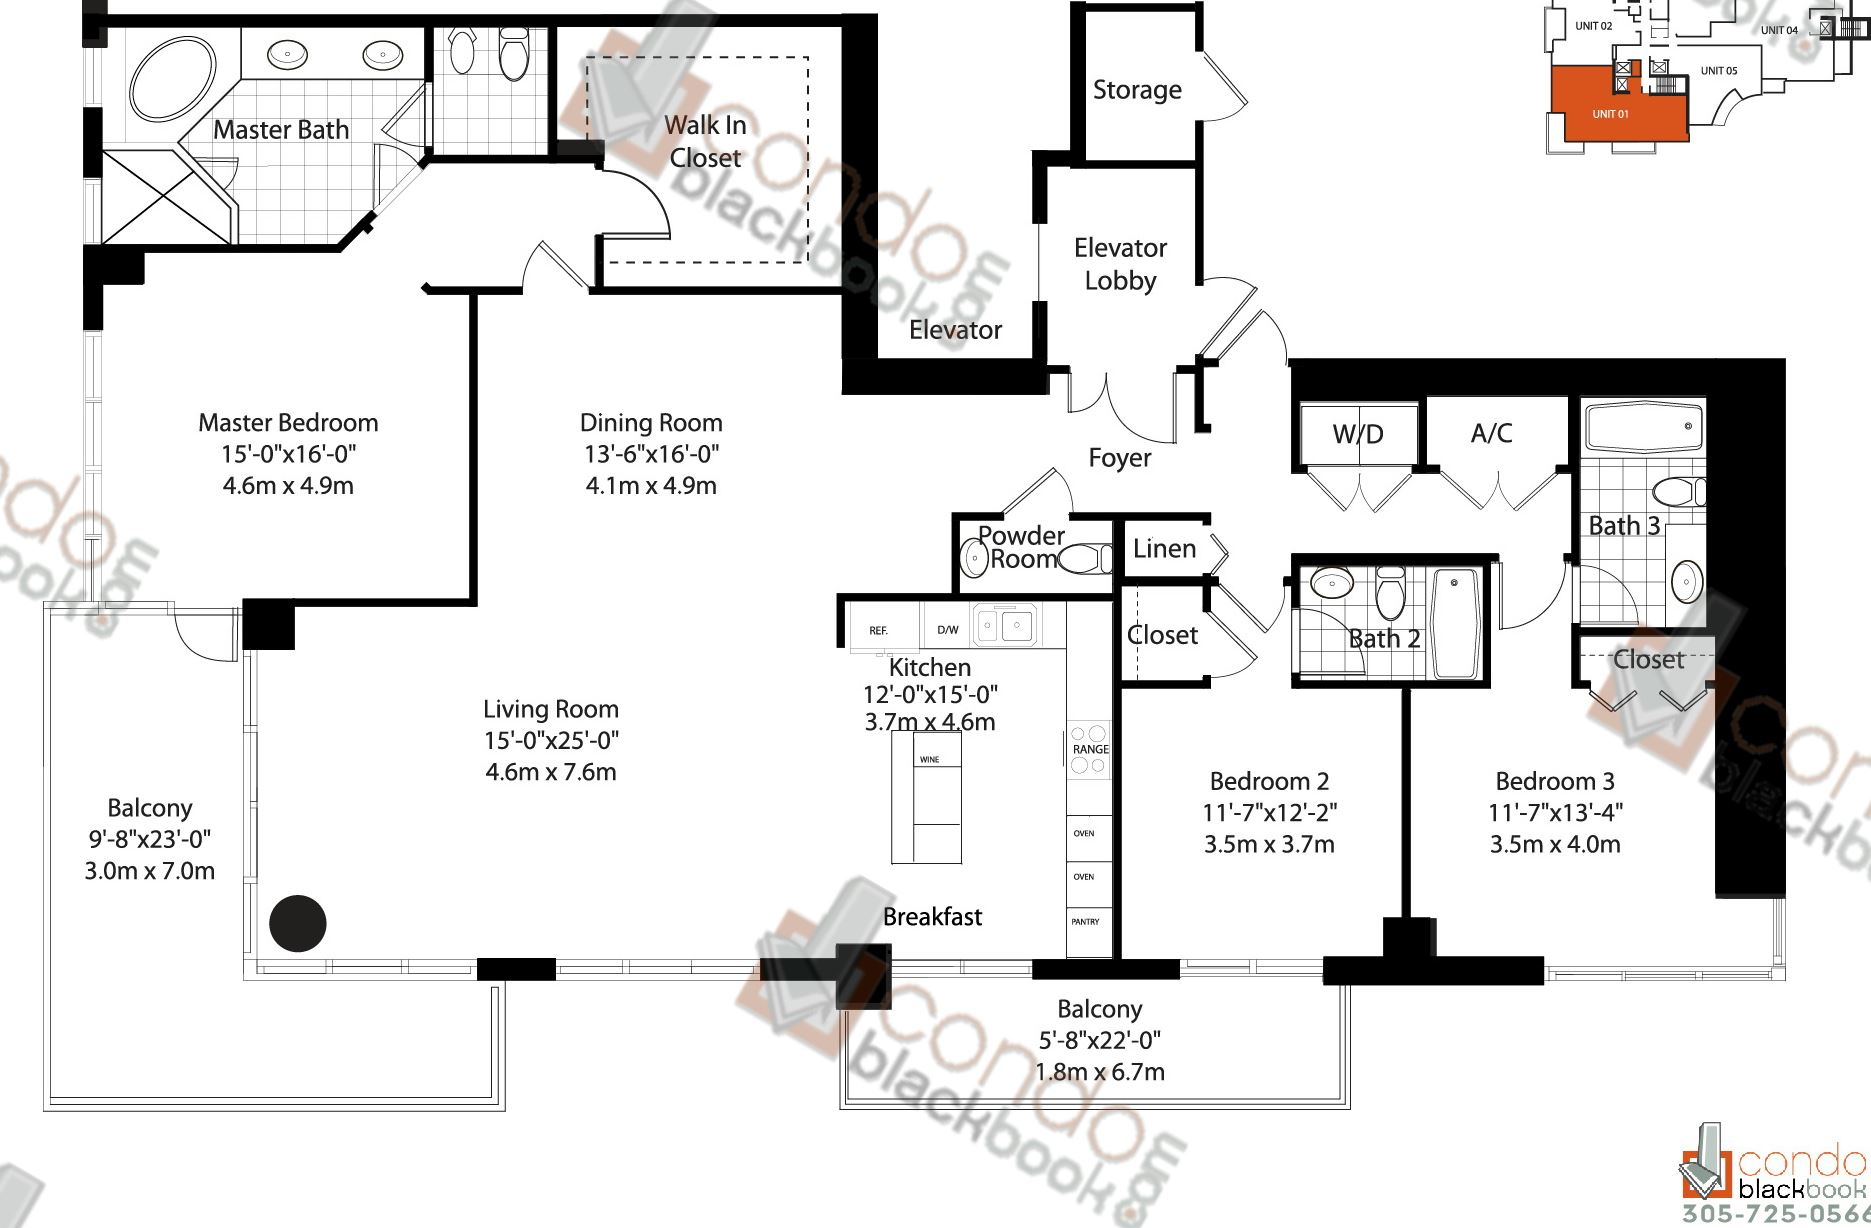 Floor plan for Asia Brickell Key Miami, model Unit 01, line 01, 3/3,5 bedrooms, 2,762 sq ft